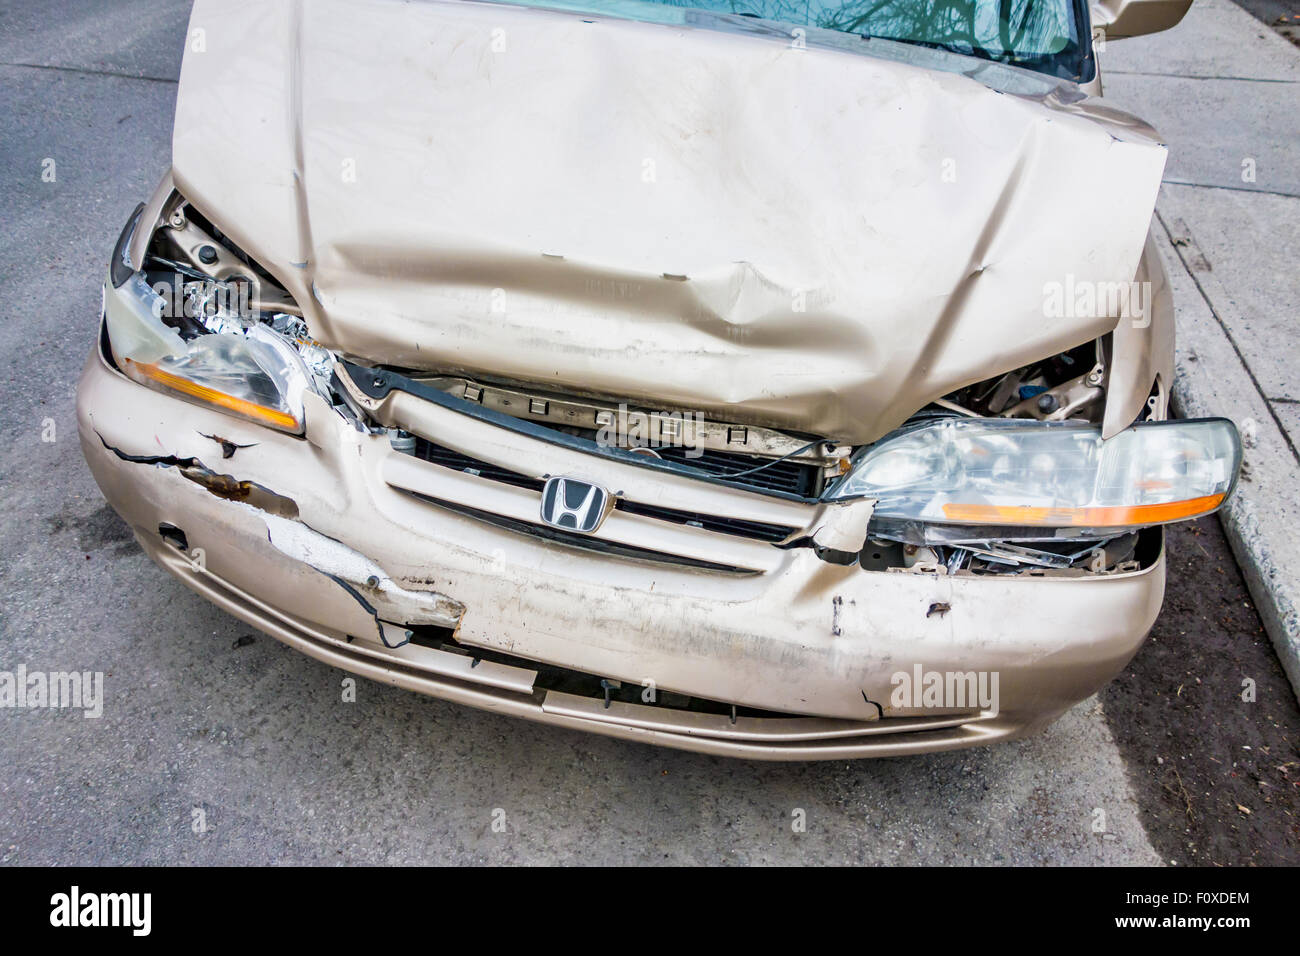 Front part of a crashed car - Stock Image